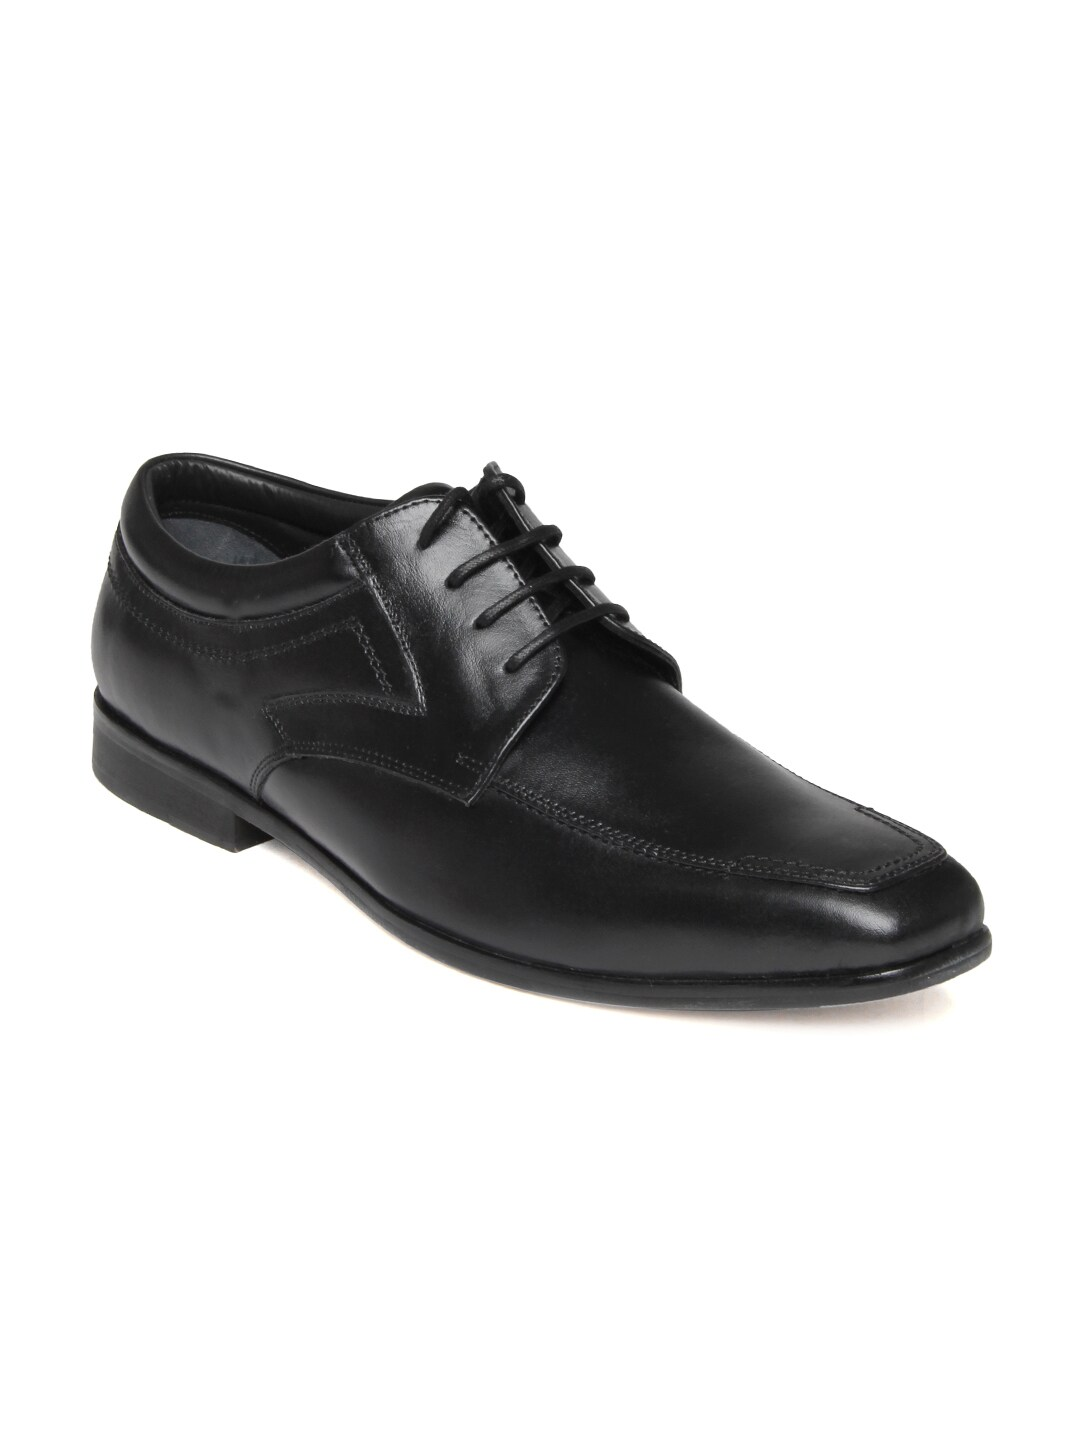 buy engross black leather semi formal shoes 633